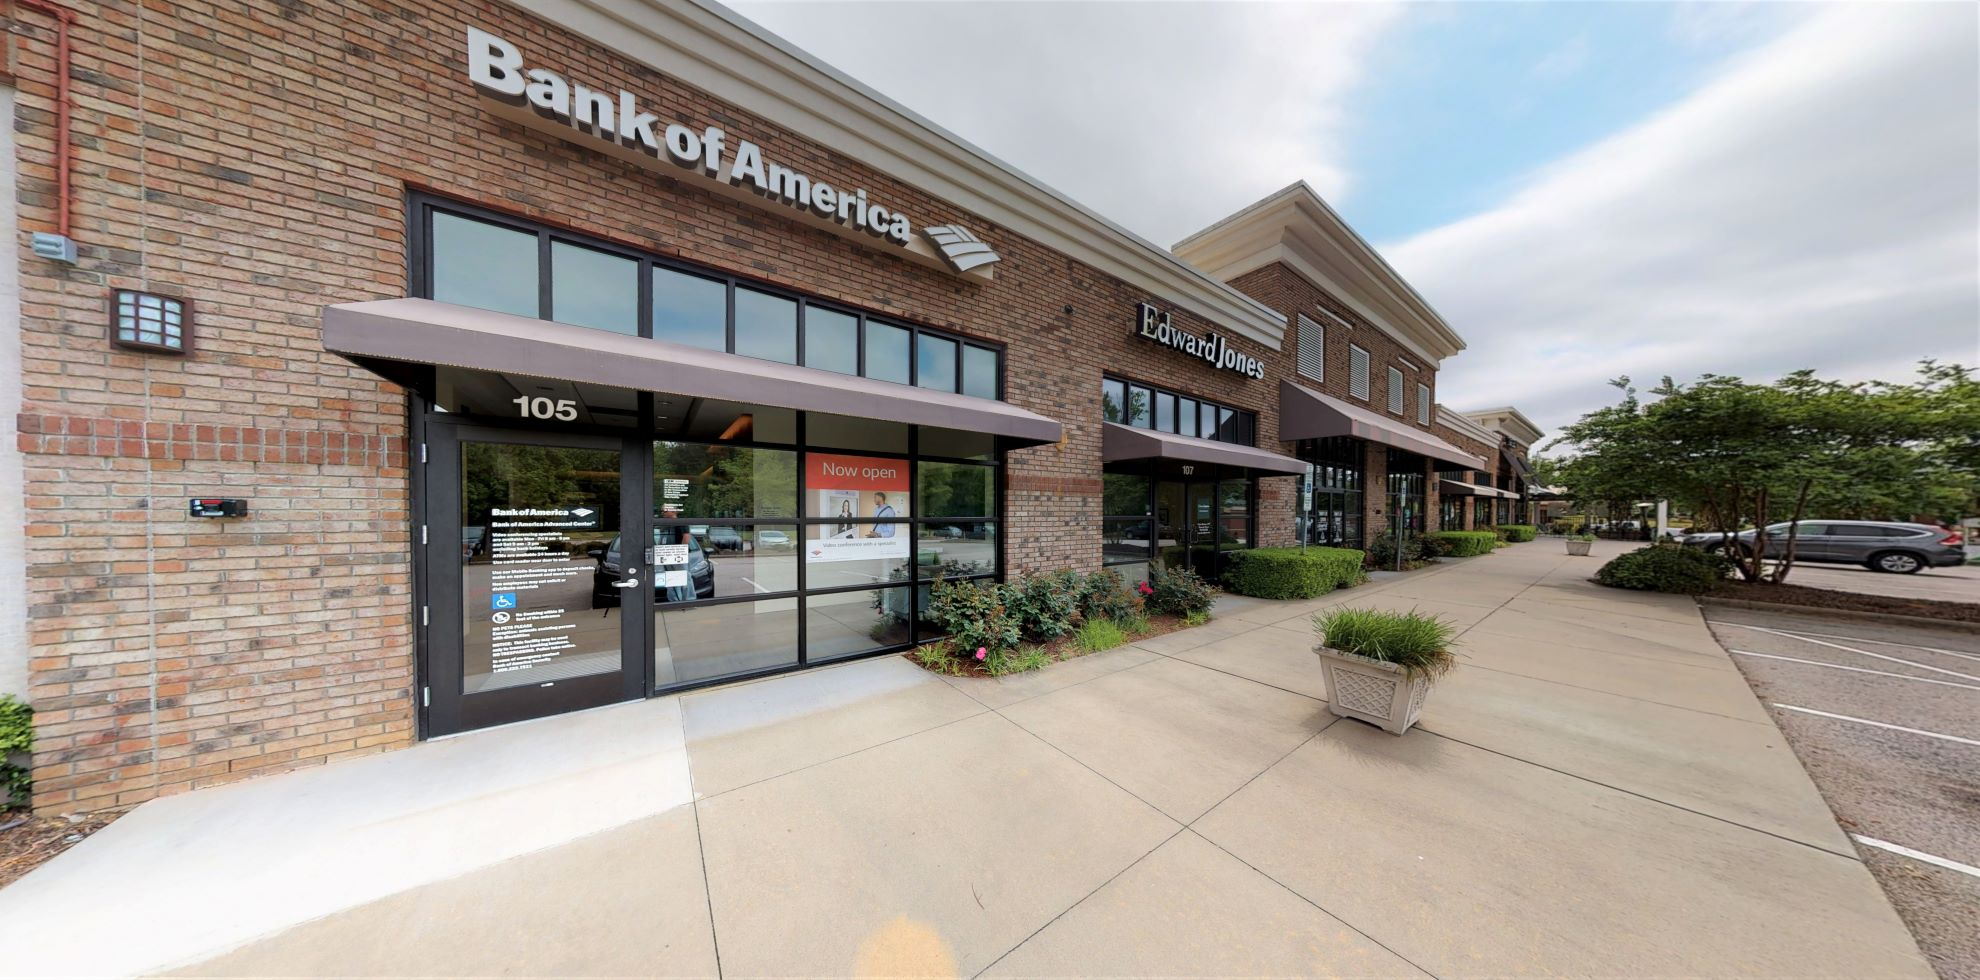 Bank of America Advanced Center with walk-up ATM   5160 Sunset Lake Rd, Apex, NC 27539